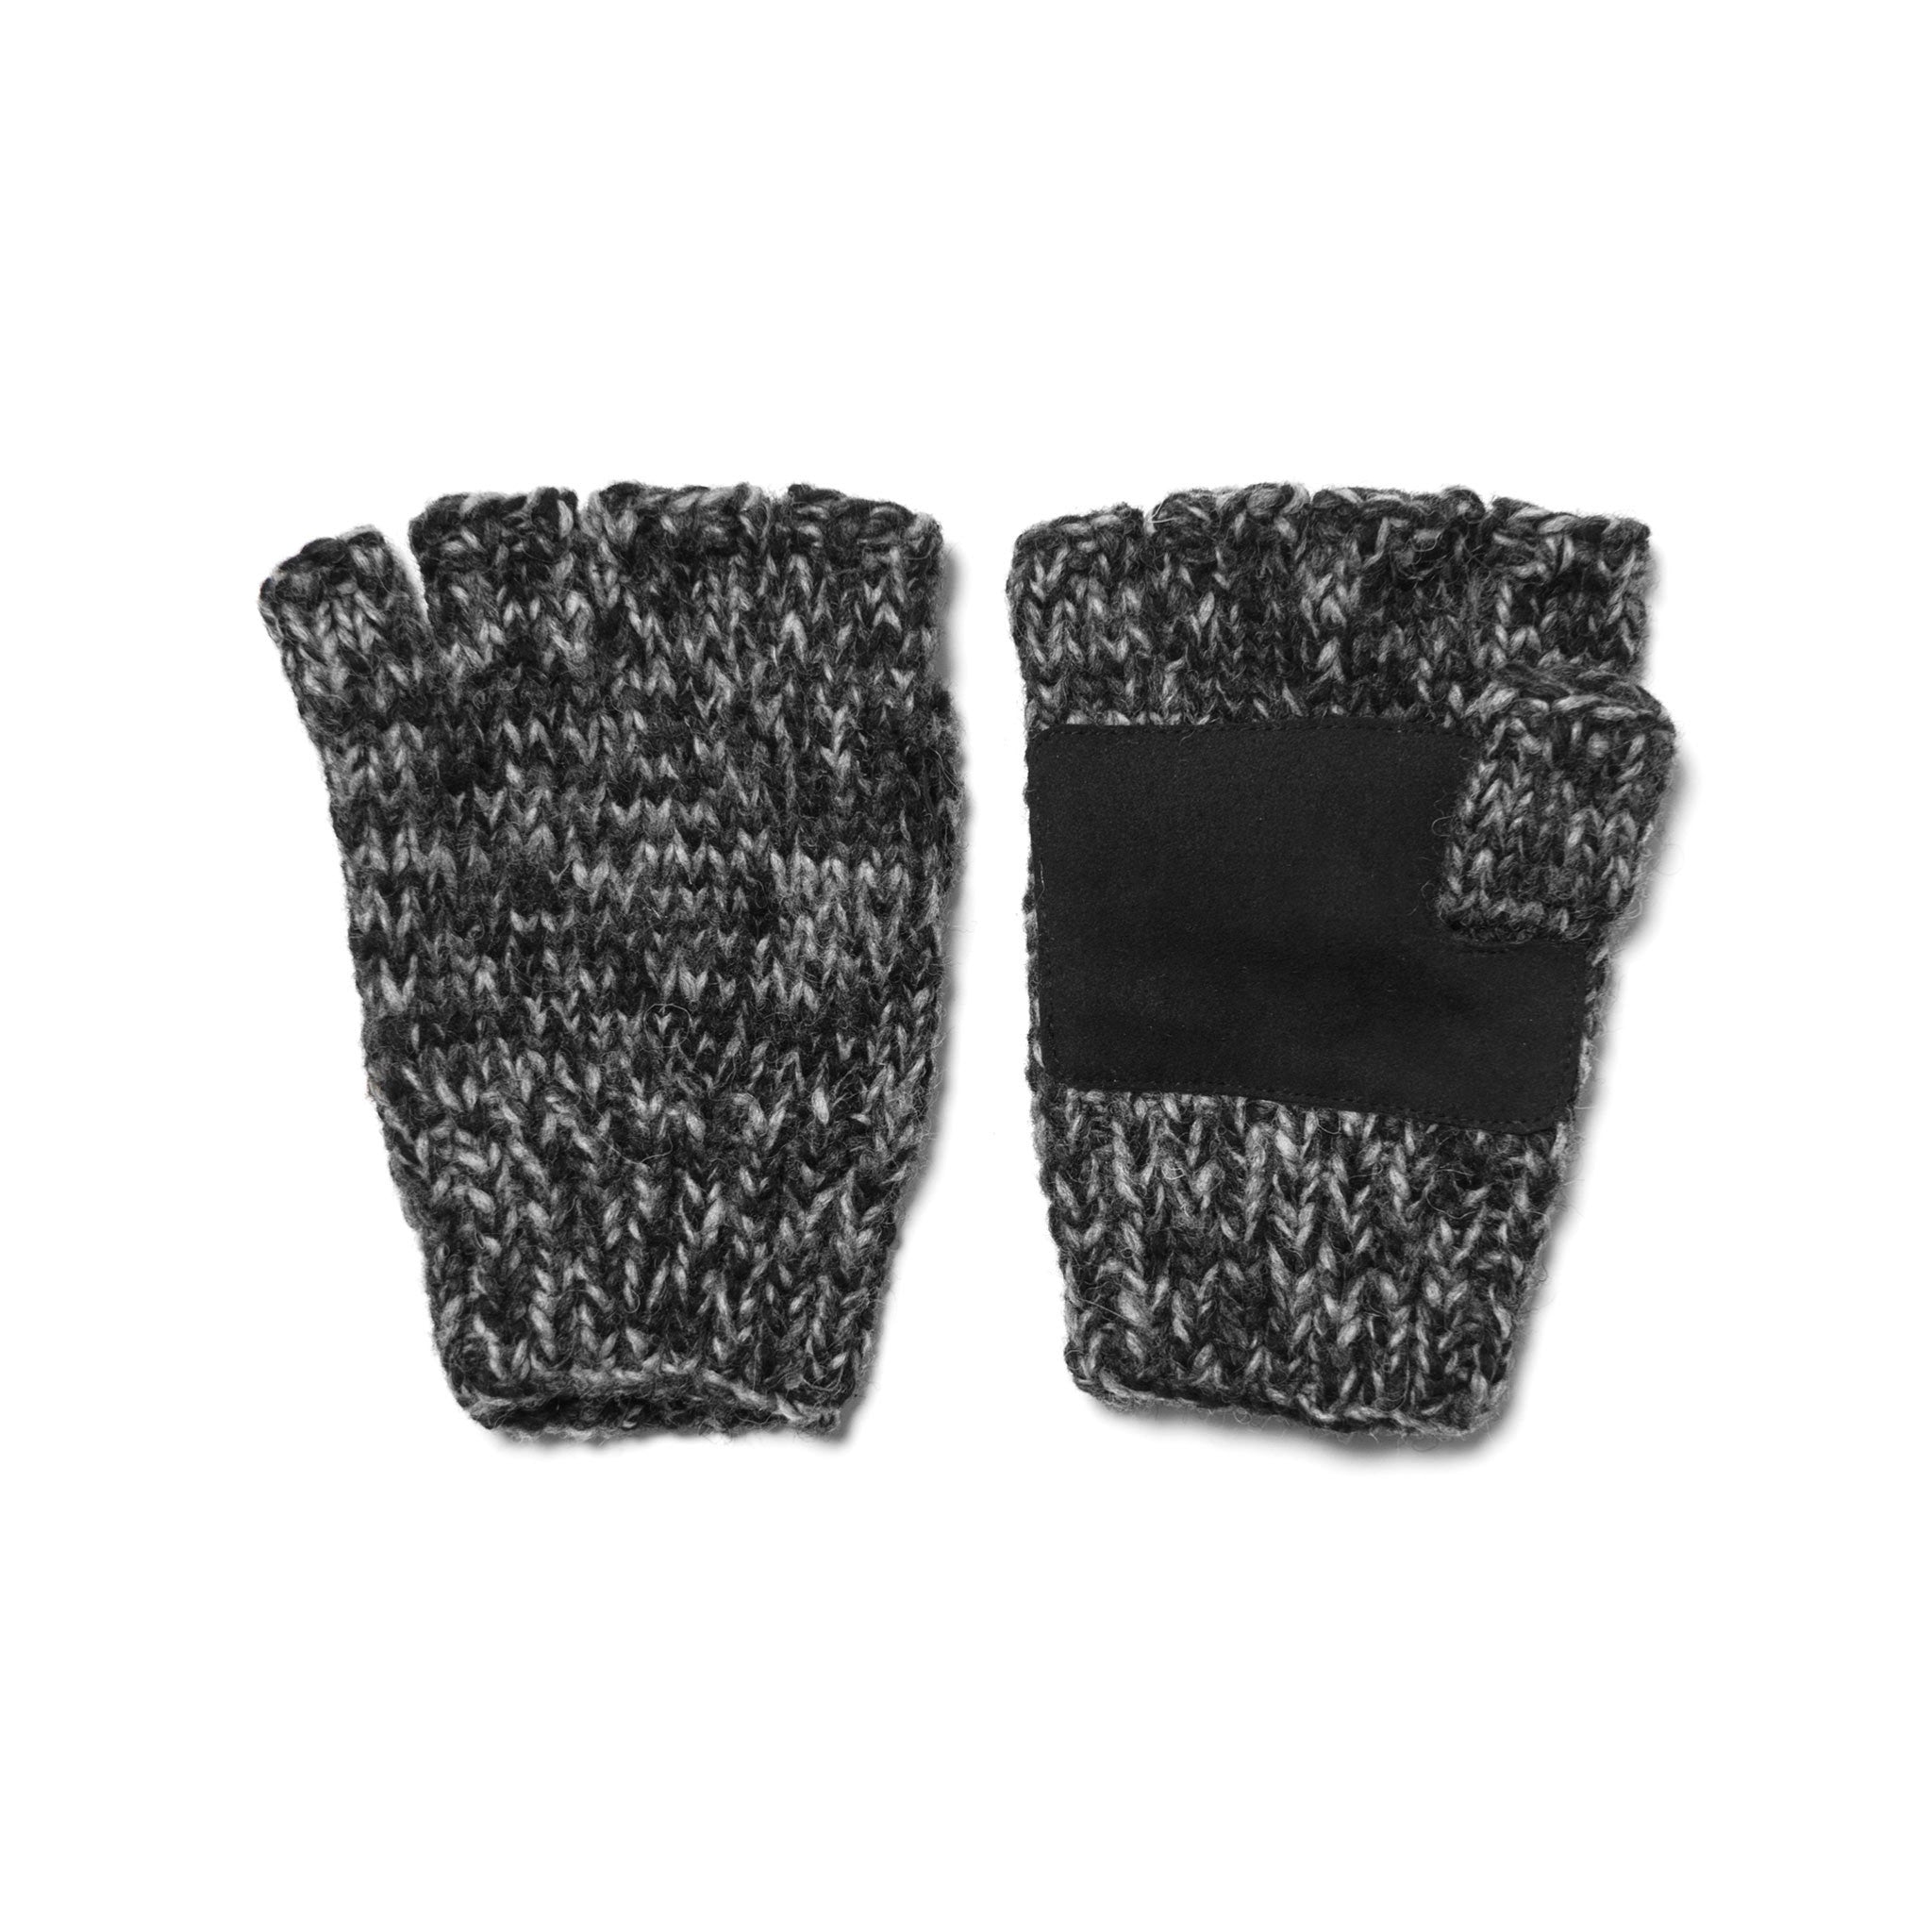 Fingerless gloves canada - Fingerless Gloves Canada 2